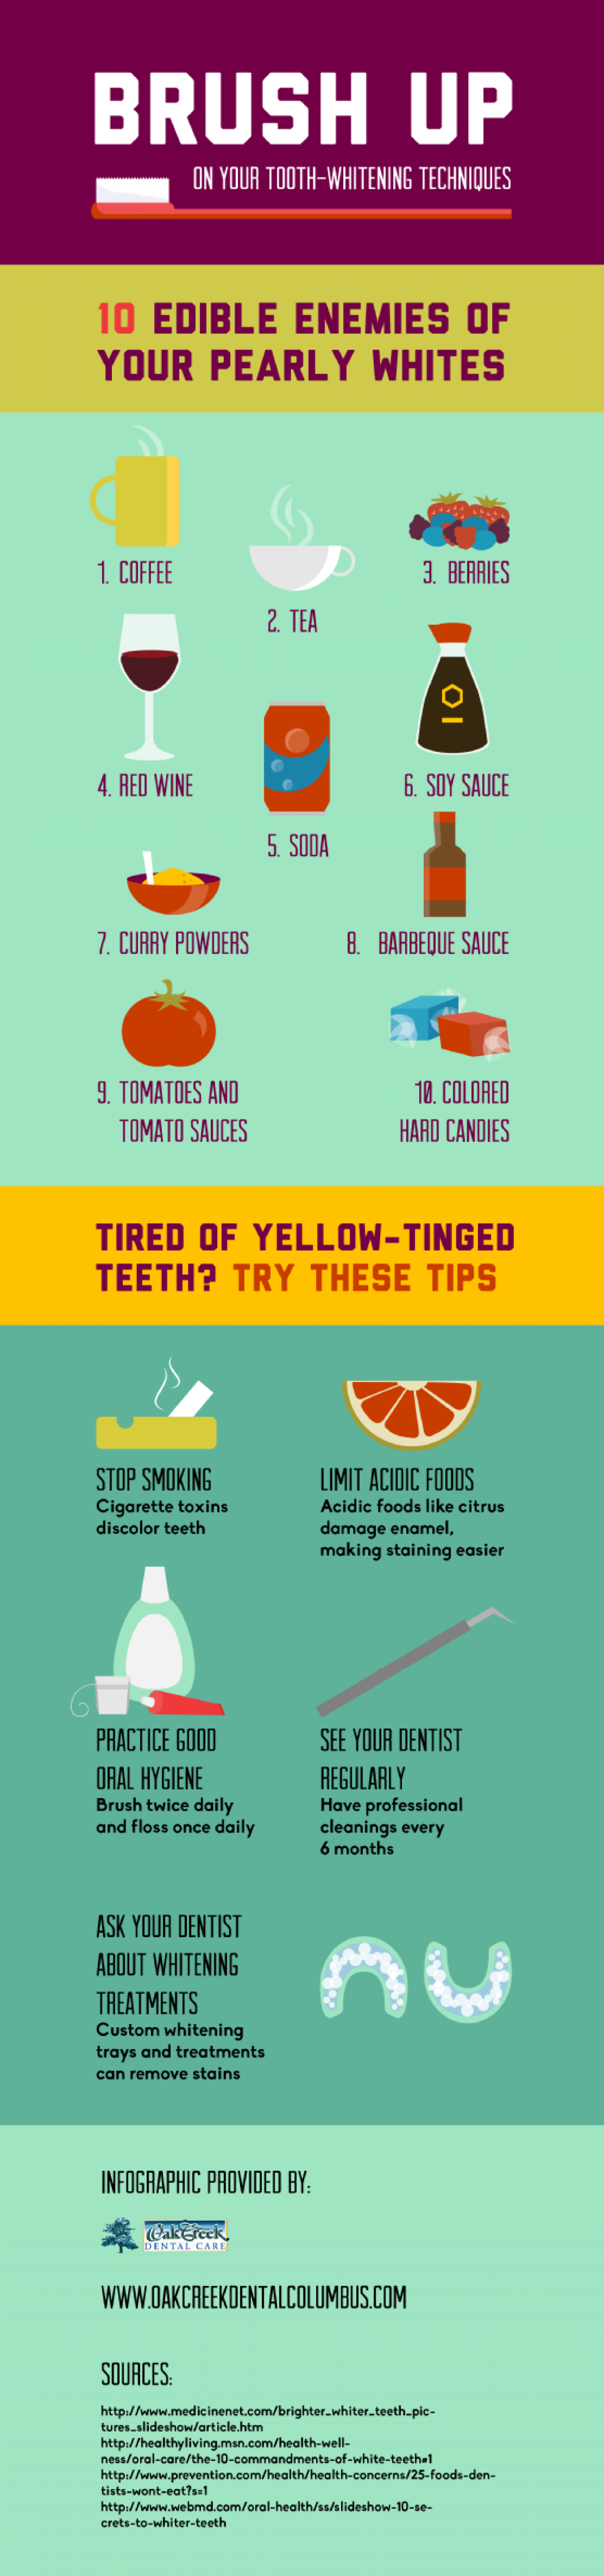 Brush Up on Your Tooth-Whitening Techniques  Infographic